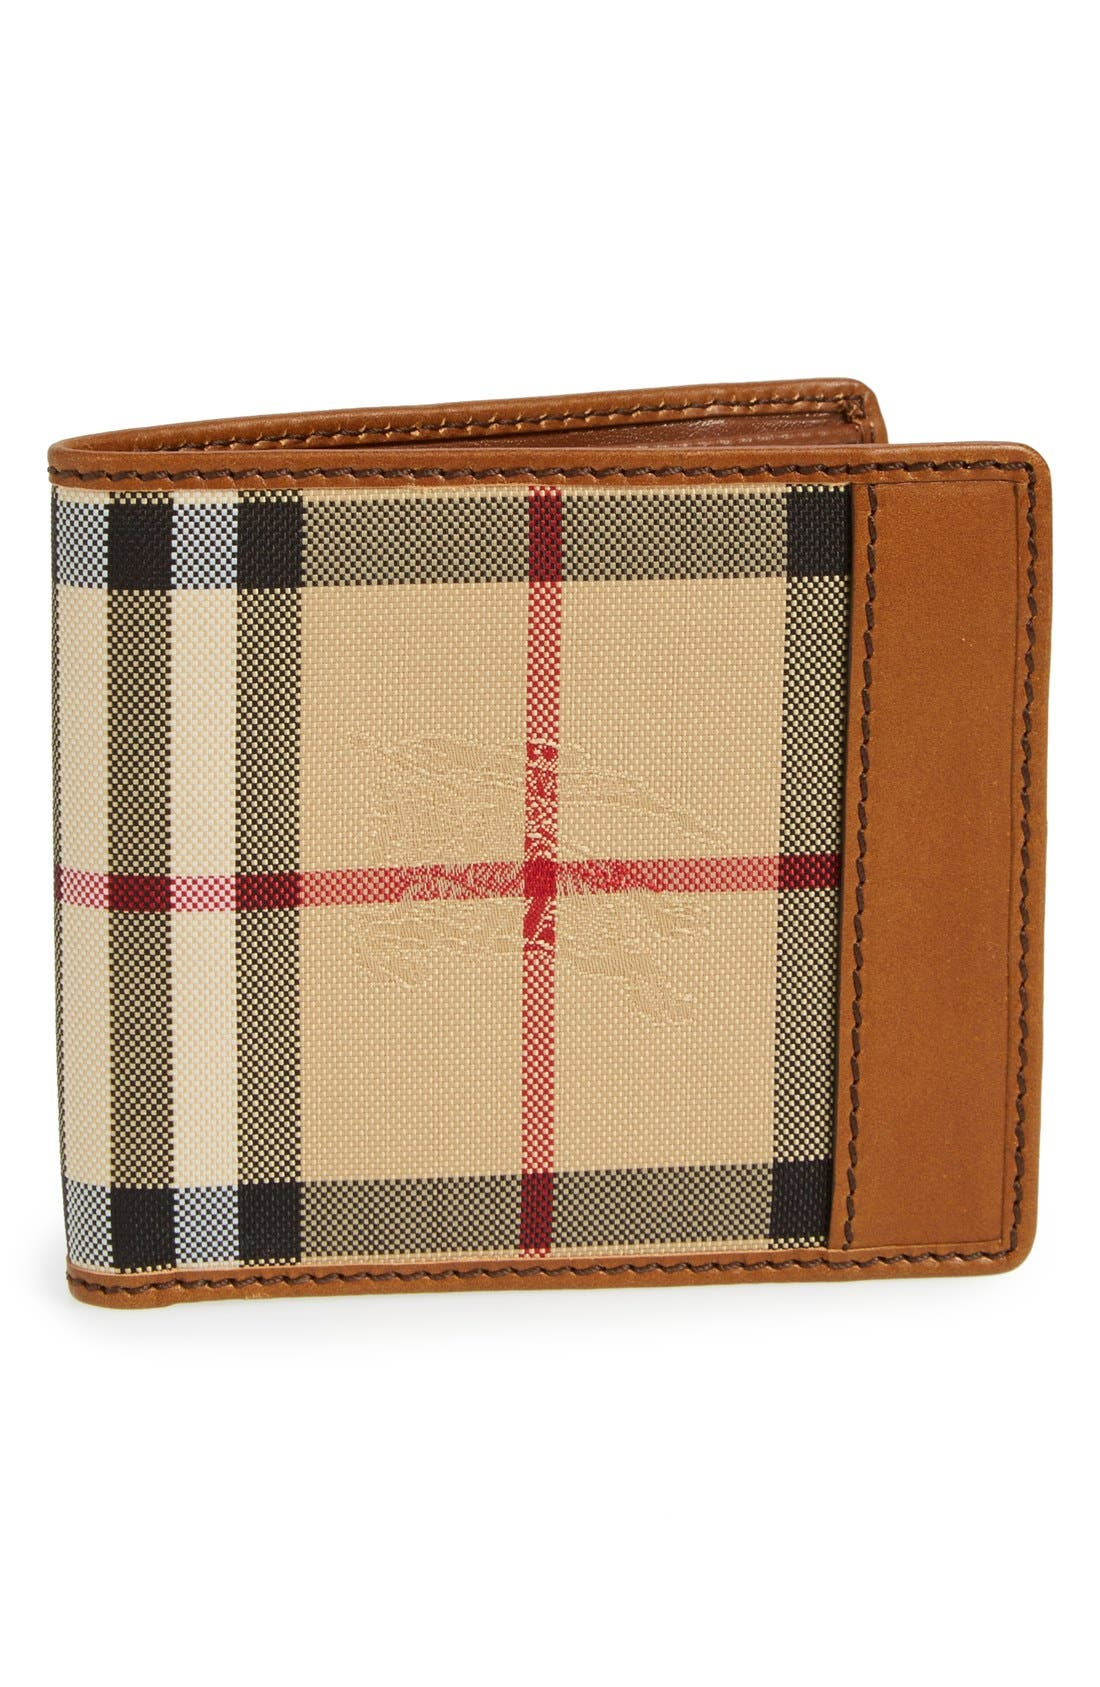 Horseferry Check Billfold Wallet,                         Main,                         color, 216